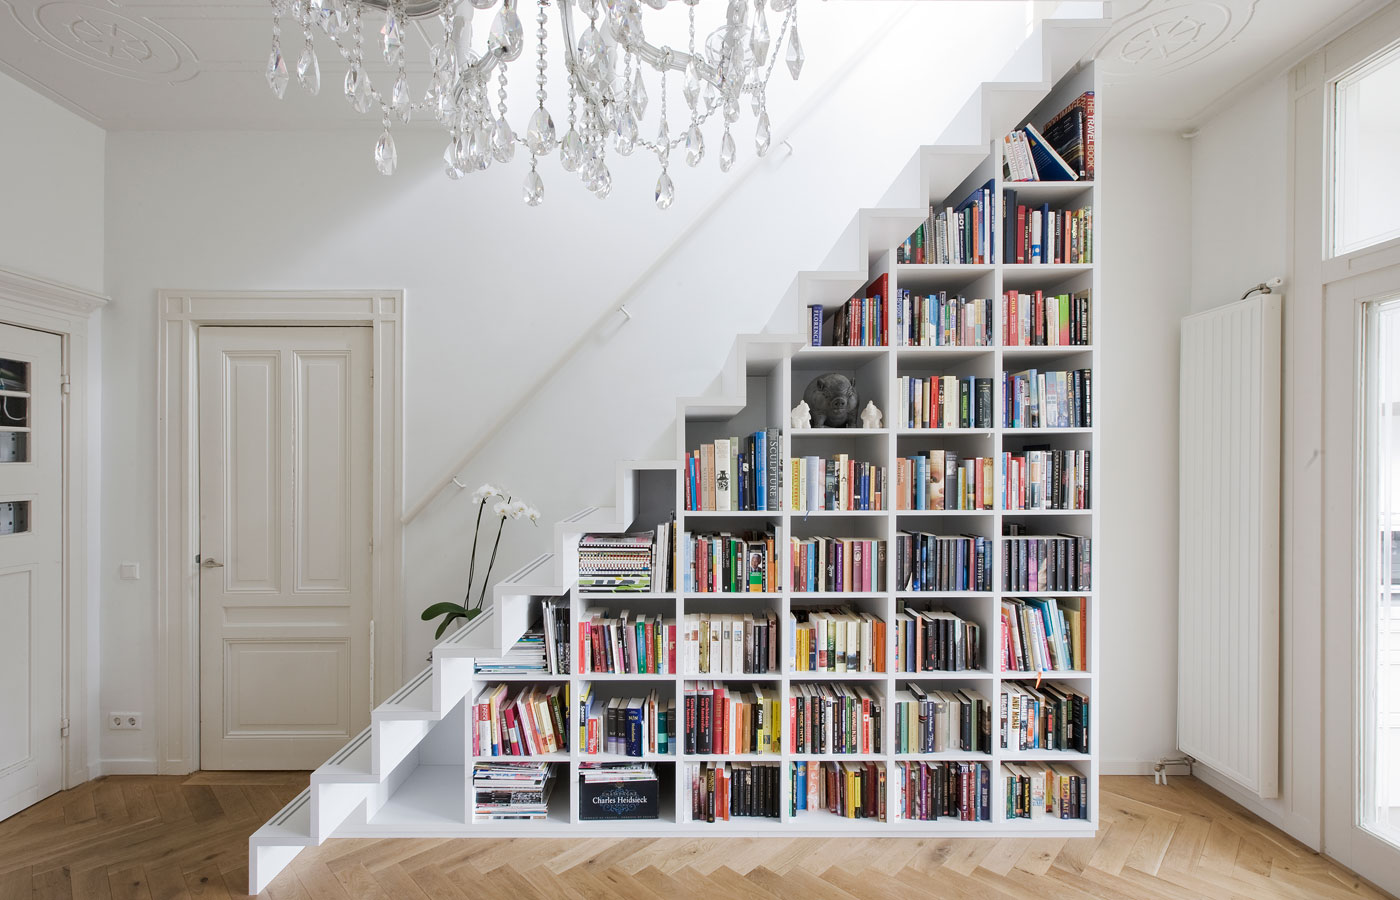 A DIY bookcase in a staircase is one of many creative book storage hacks for small apartments.